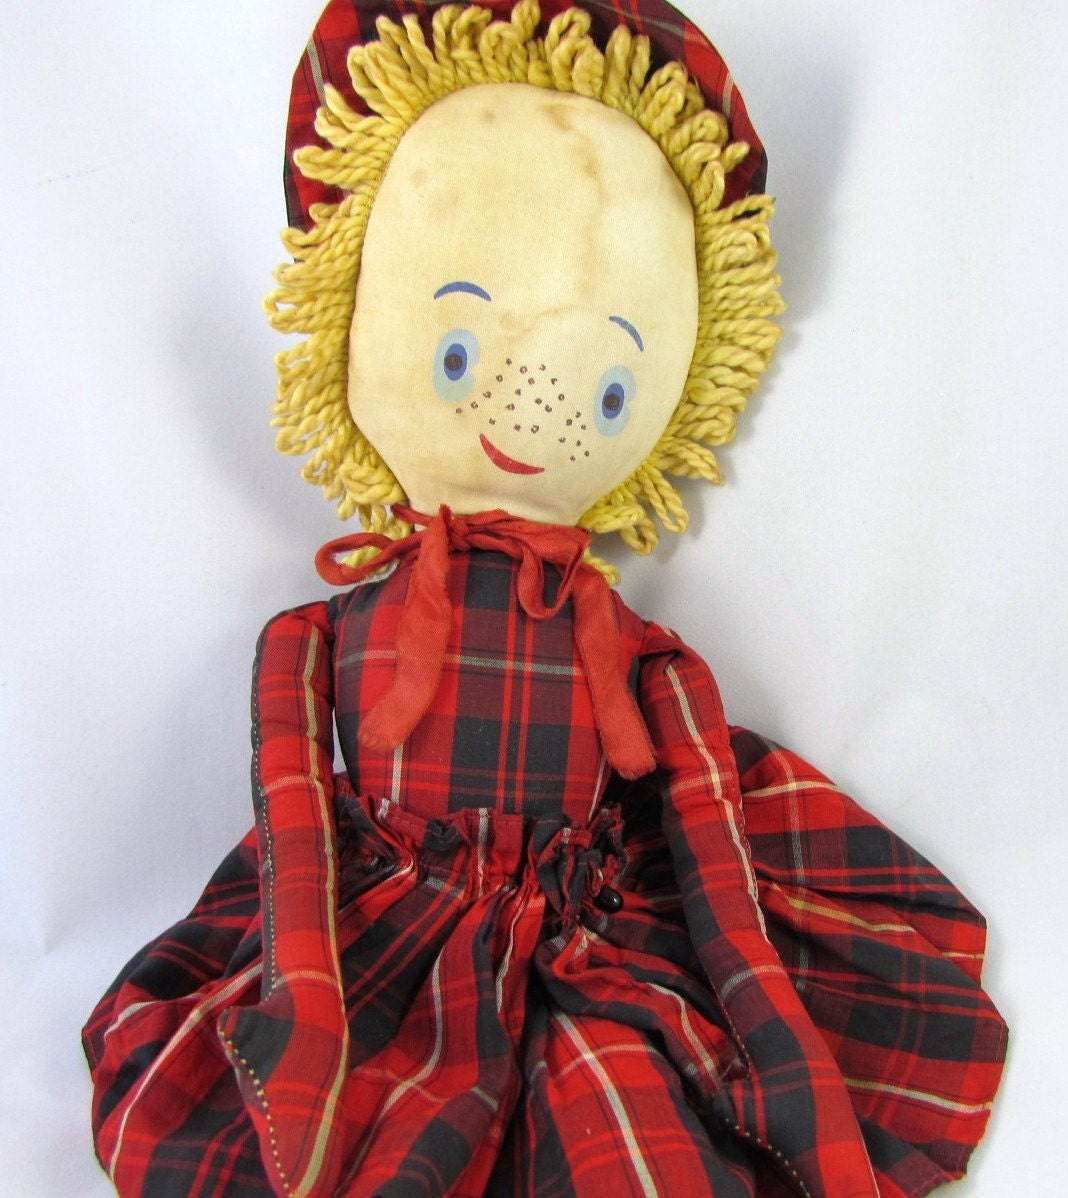 Vintage Cloth Doll in Red Plaid Dress Yarn Hair